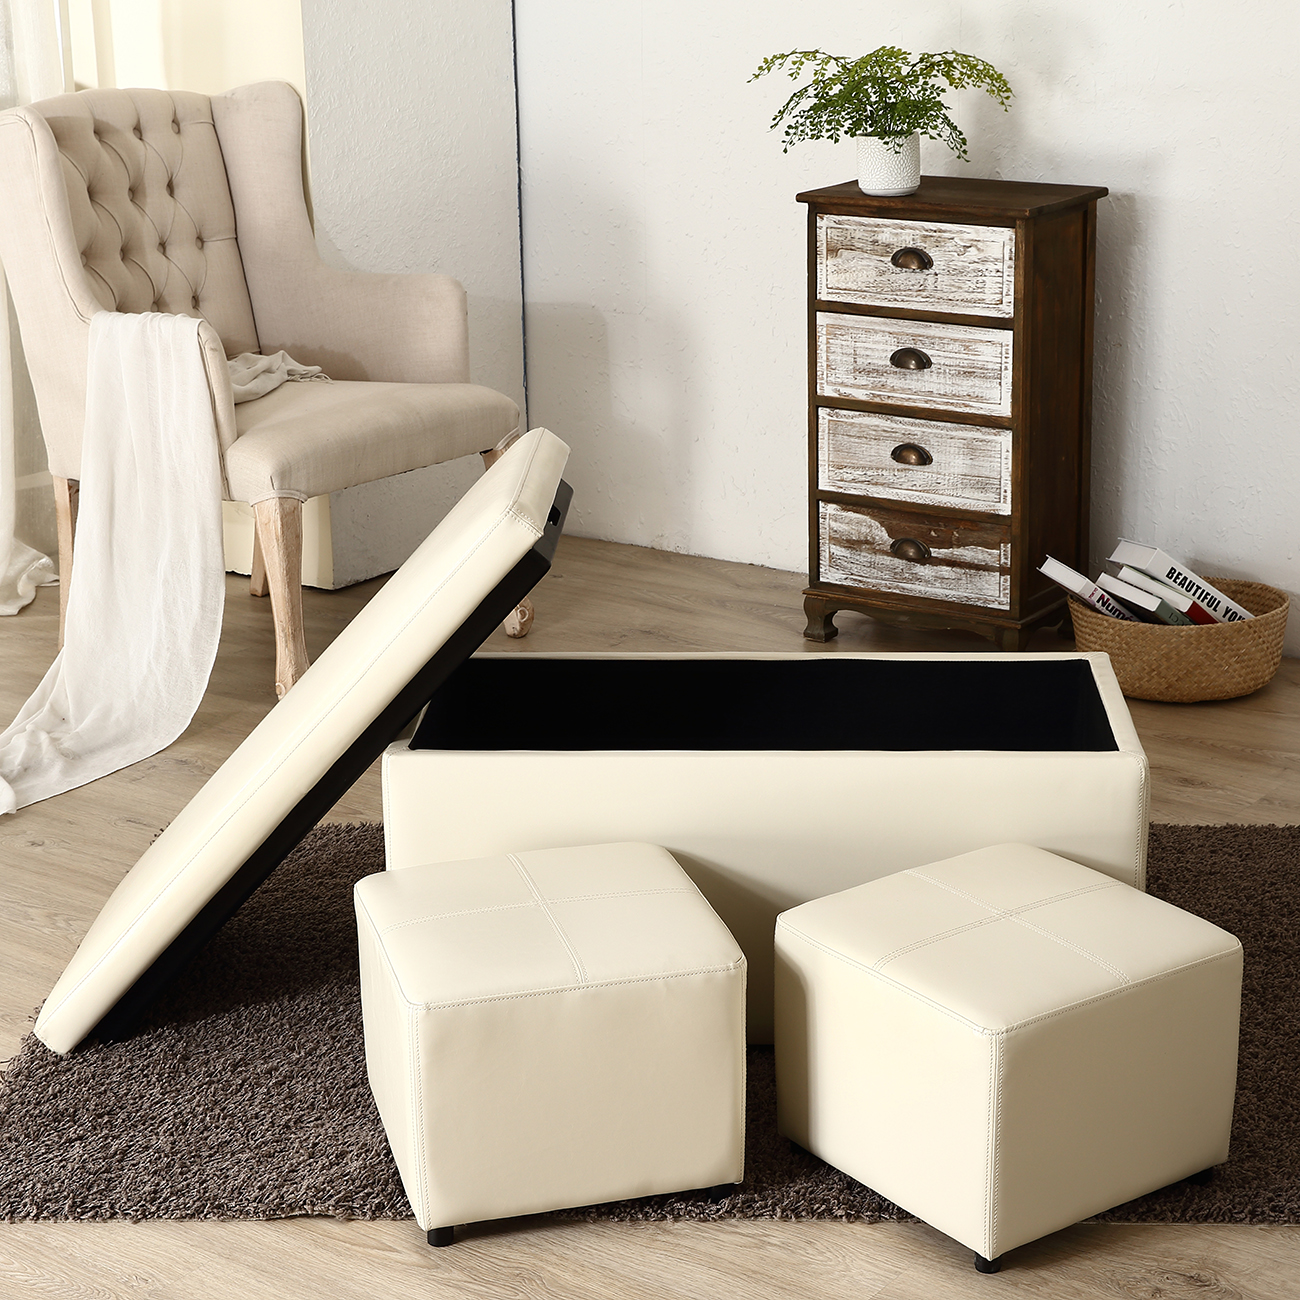 Storage Coffee Table With Tray: 3PC Ottoman Bench Storage Lid Tray Footrest Coffee Table